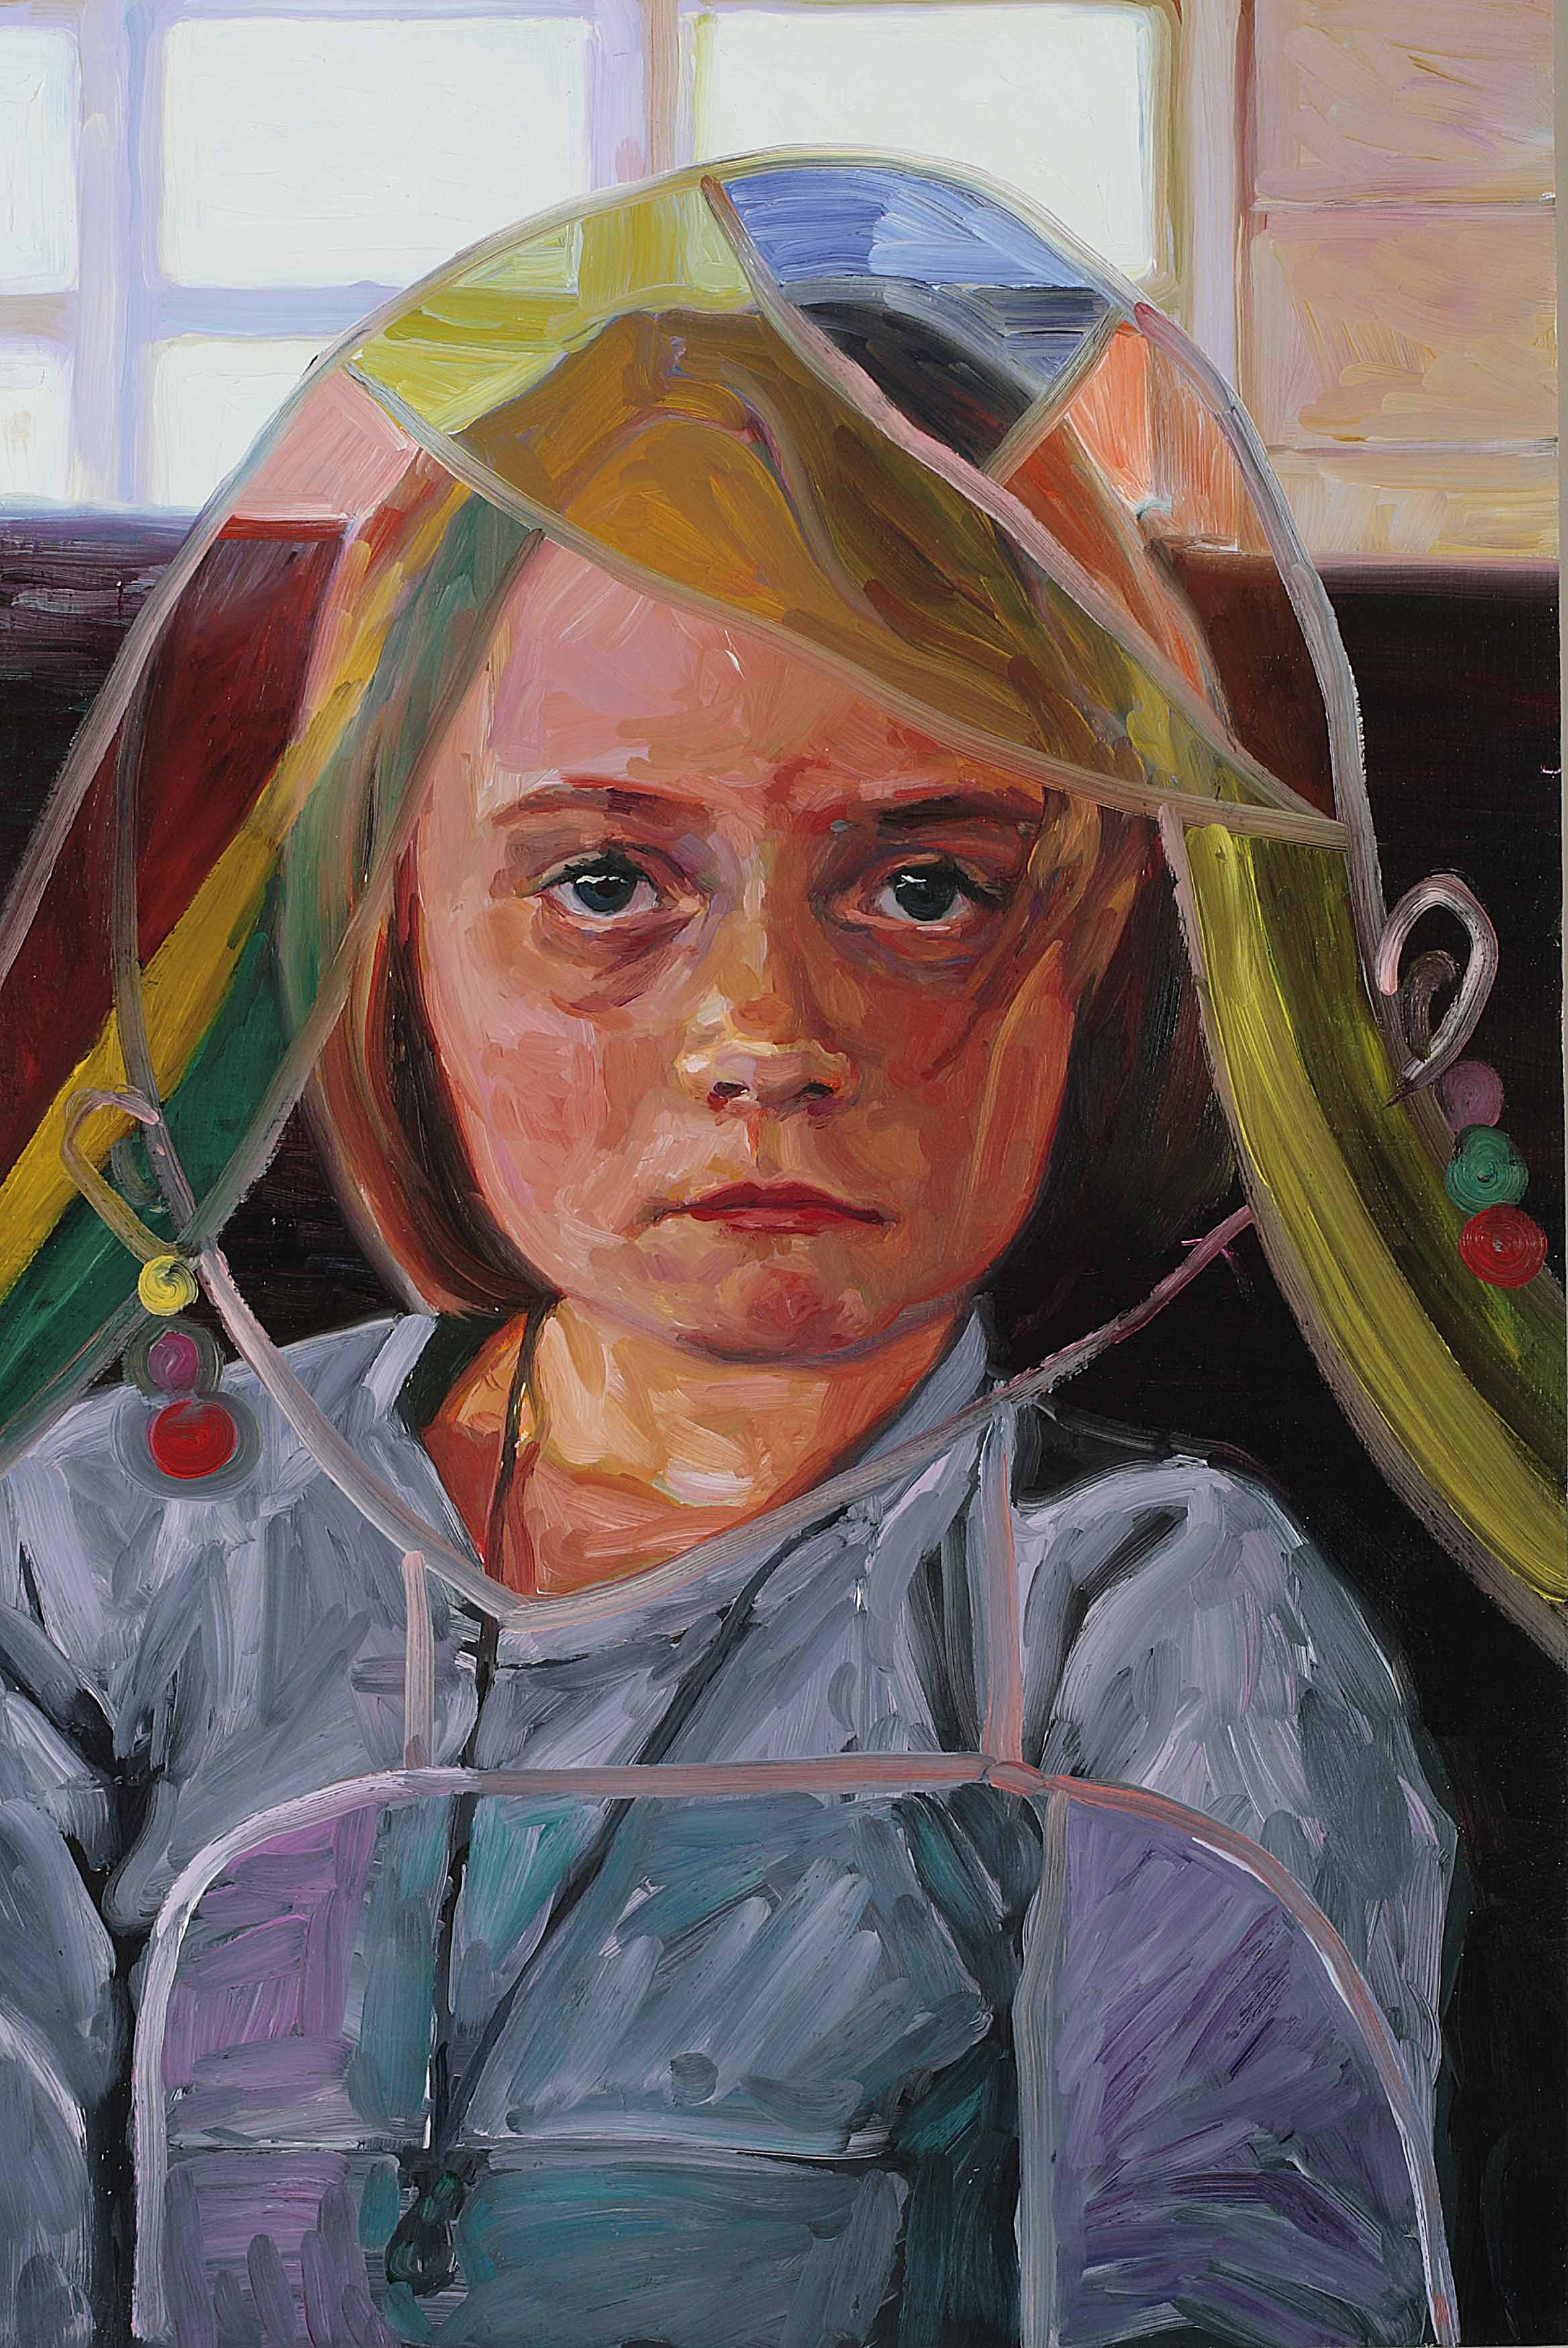 Looking at You (Penelope), oil on board, 60 x 40 cm, 2008.